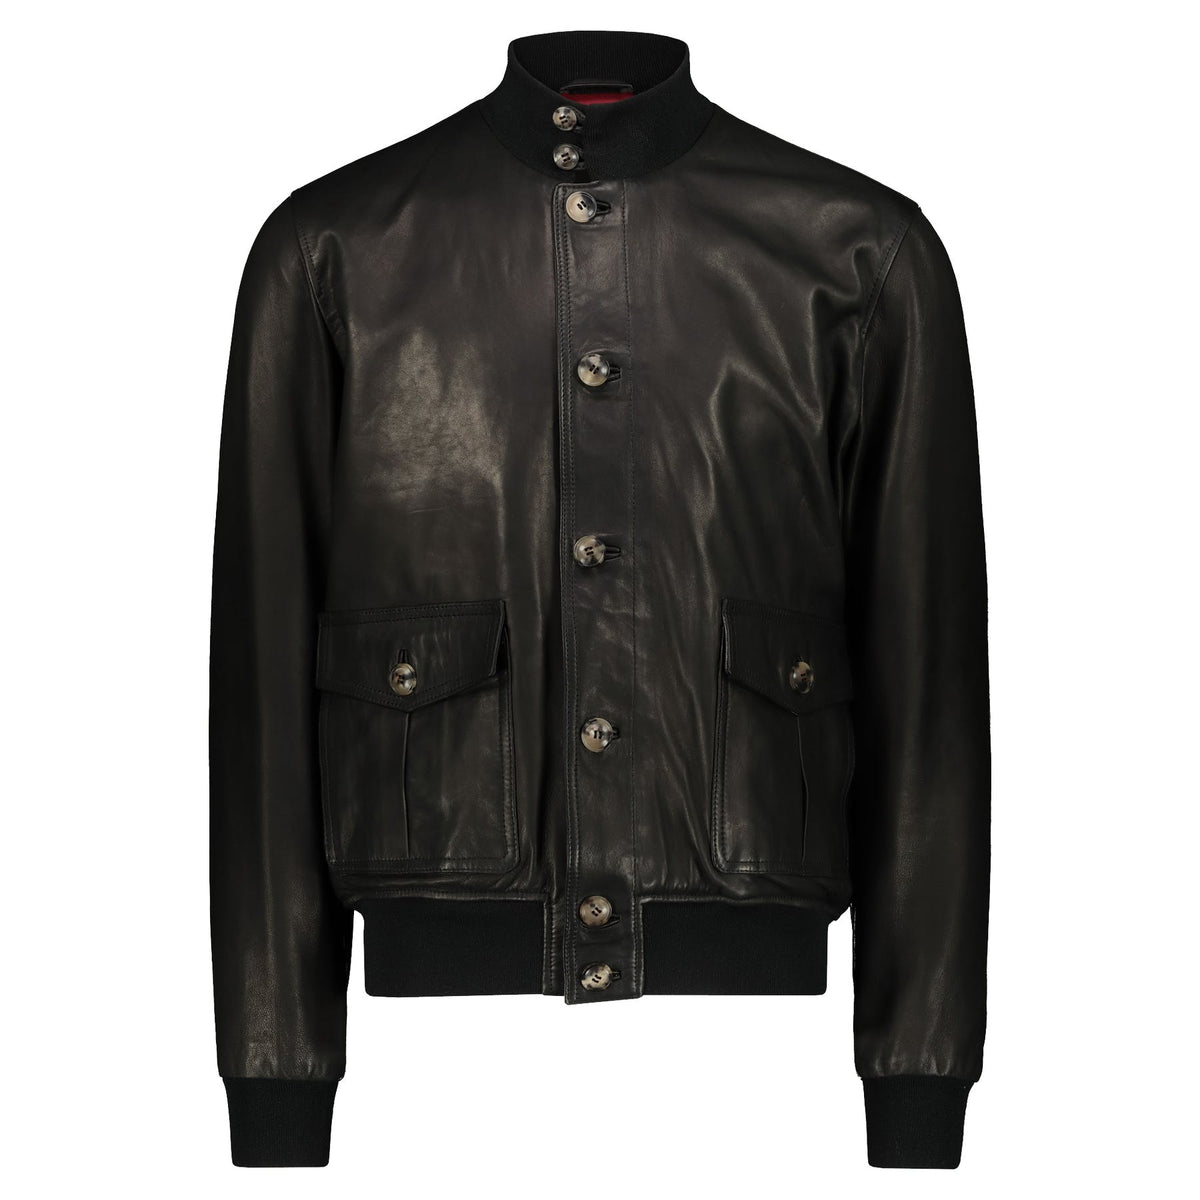 Atacama Black natural lambskin Bomber Jacket